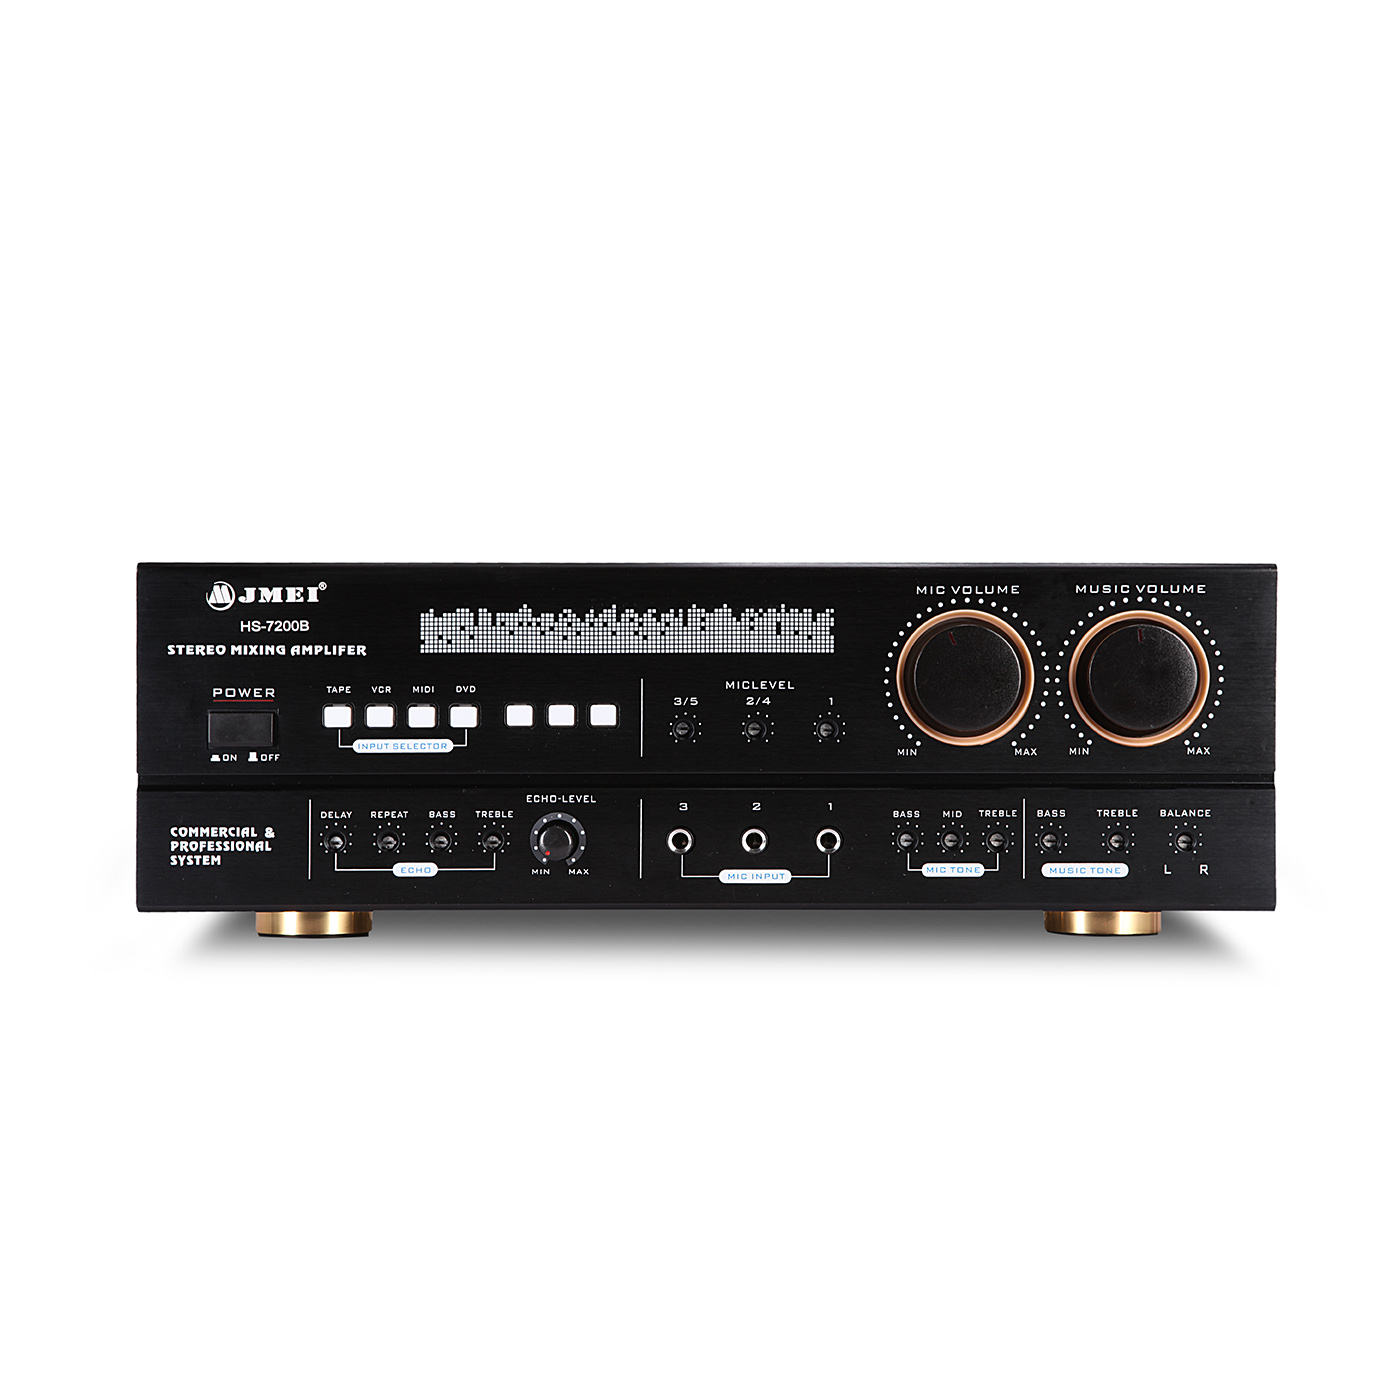 bluetooth 12v soundcraft mixer 5.1 home theatre amplifier with digital karaoke system